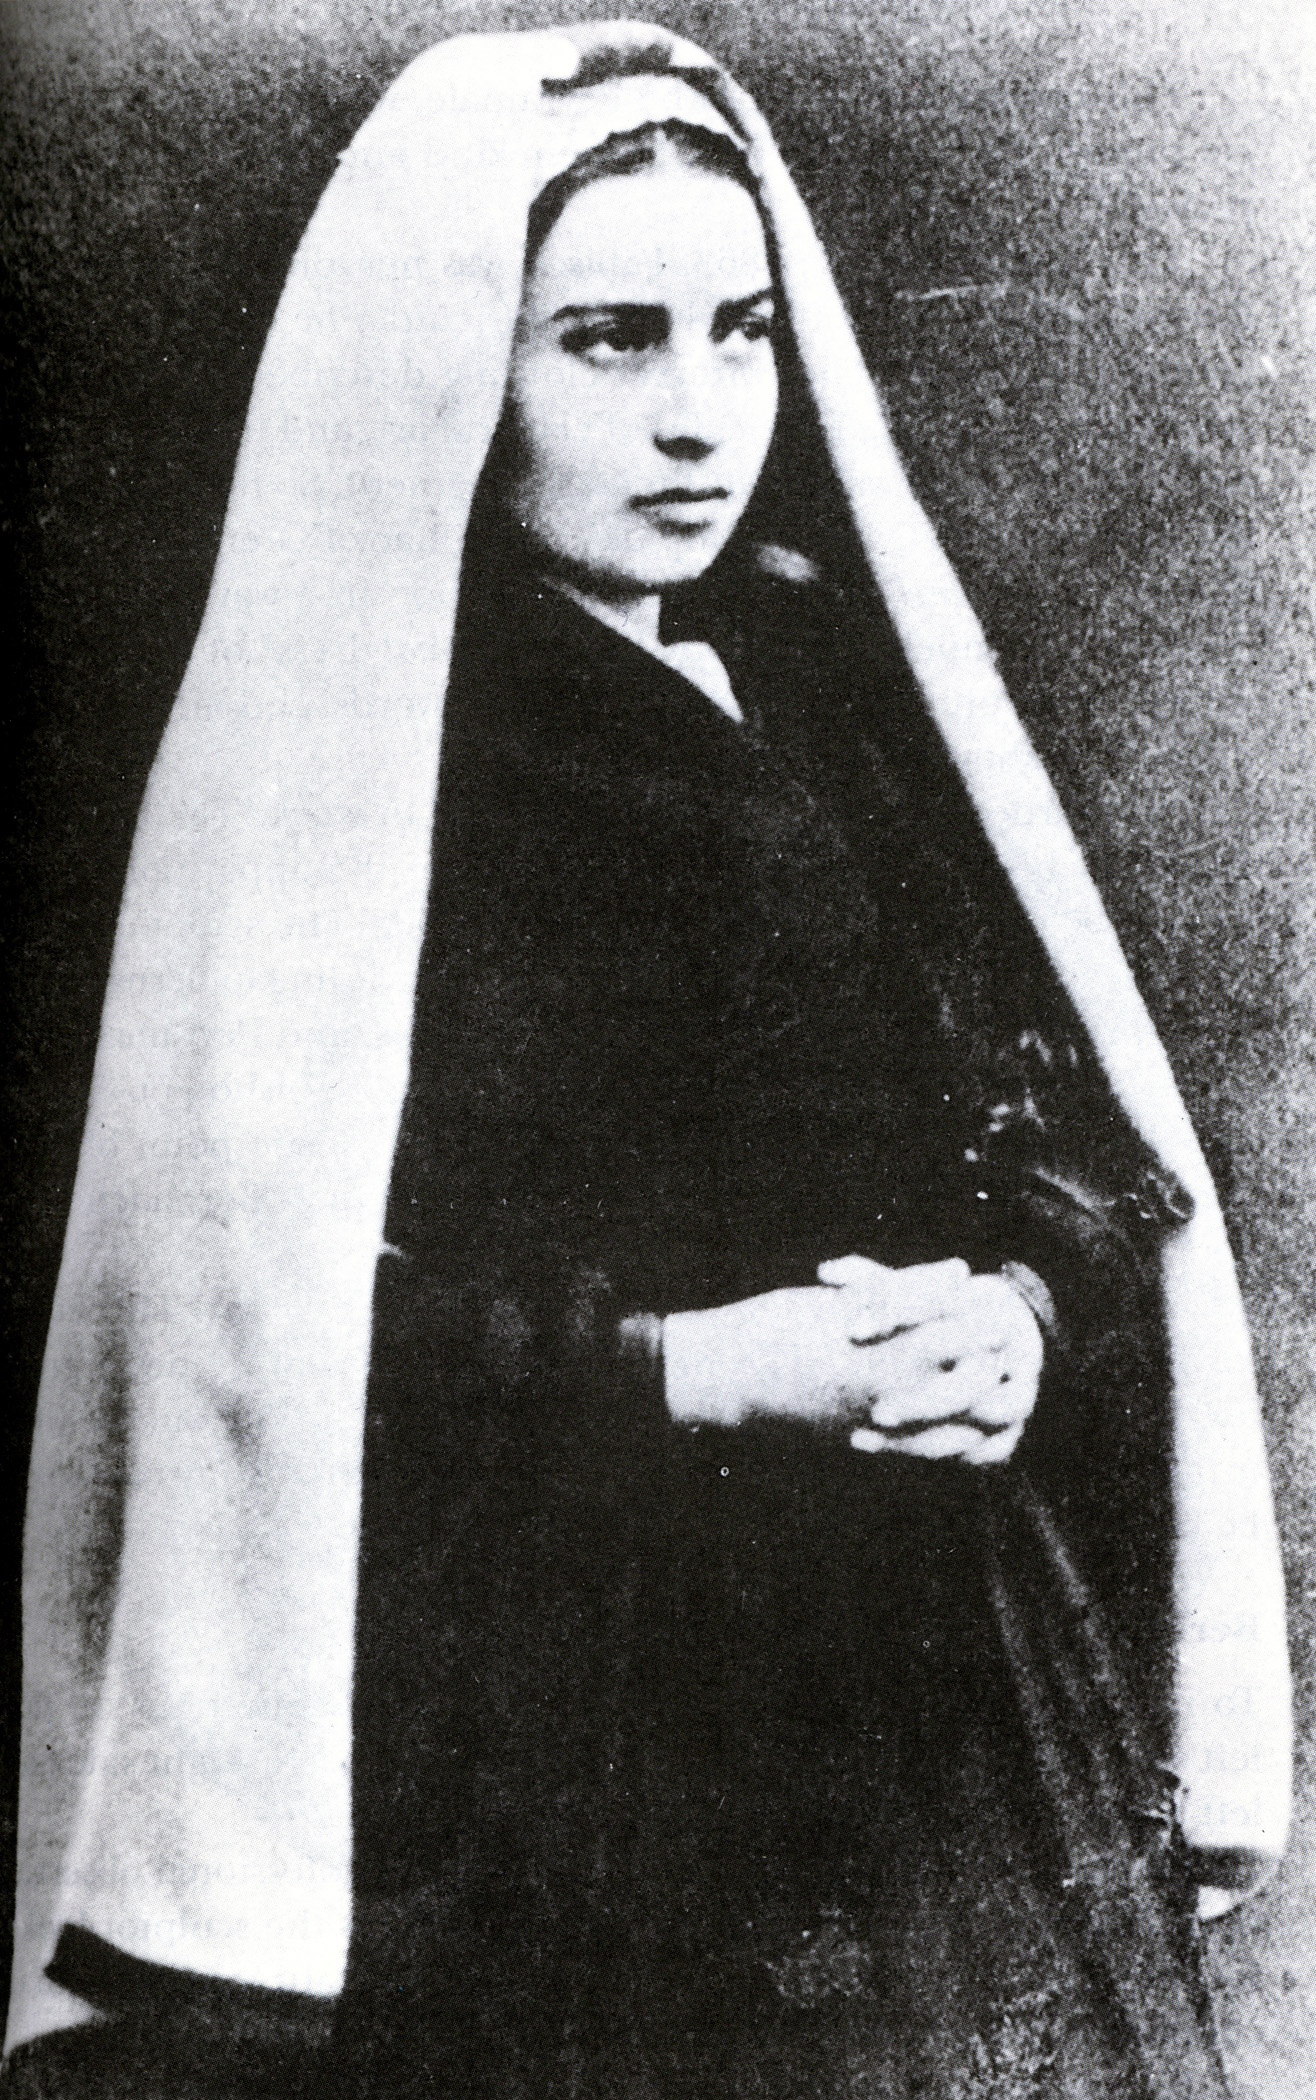 biography of saint bernadette soubirous Saint bernadette soubirous, born january the 7th 1844, her mother named  louise and father francois on the 9th of january bernadette gets baptized.